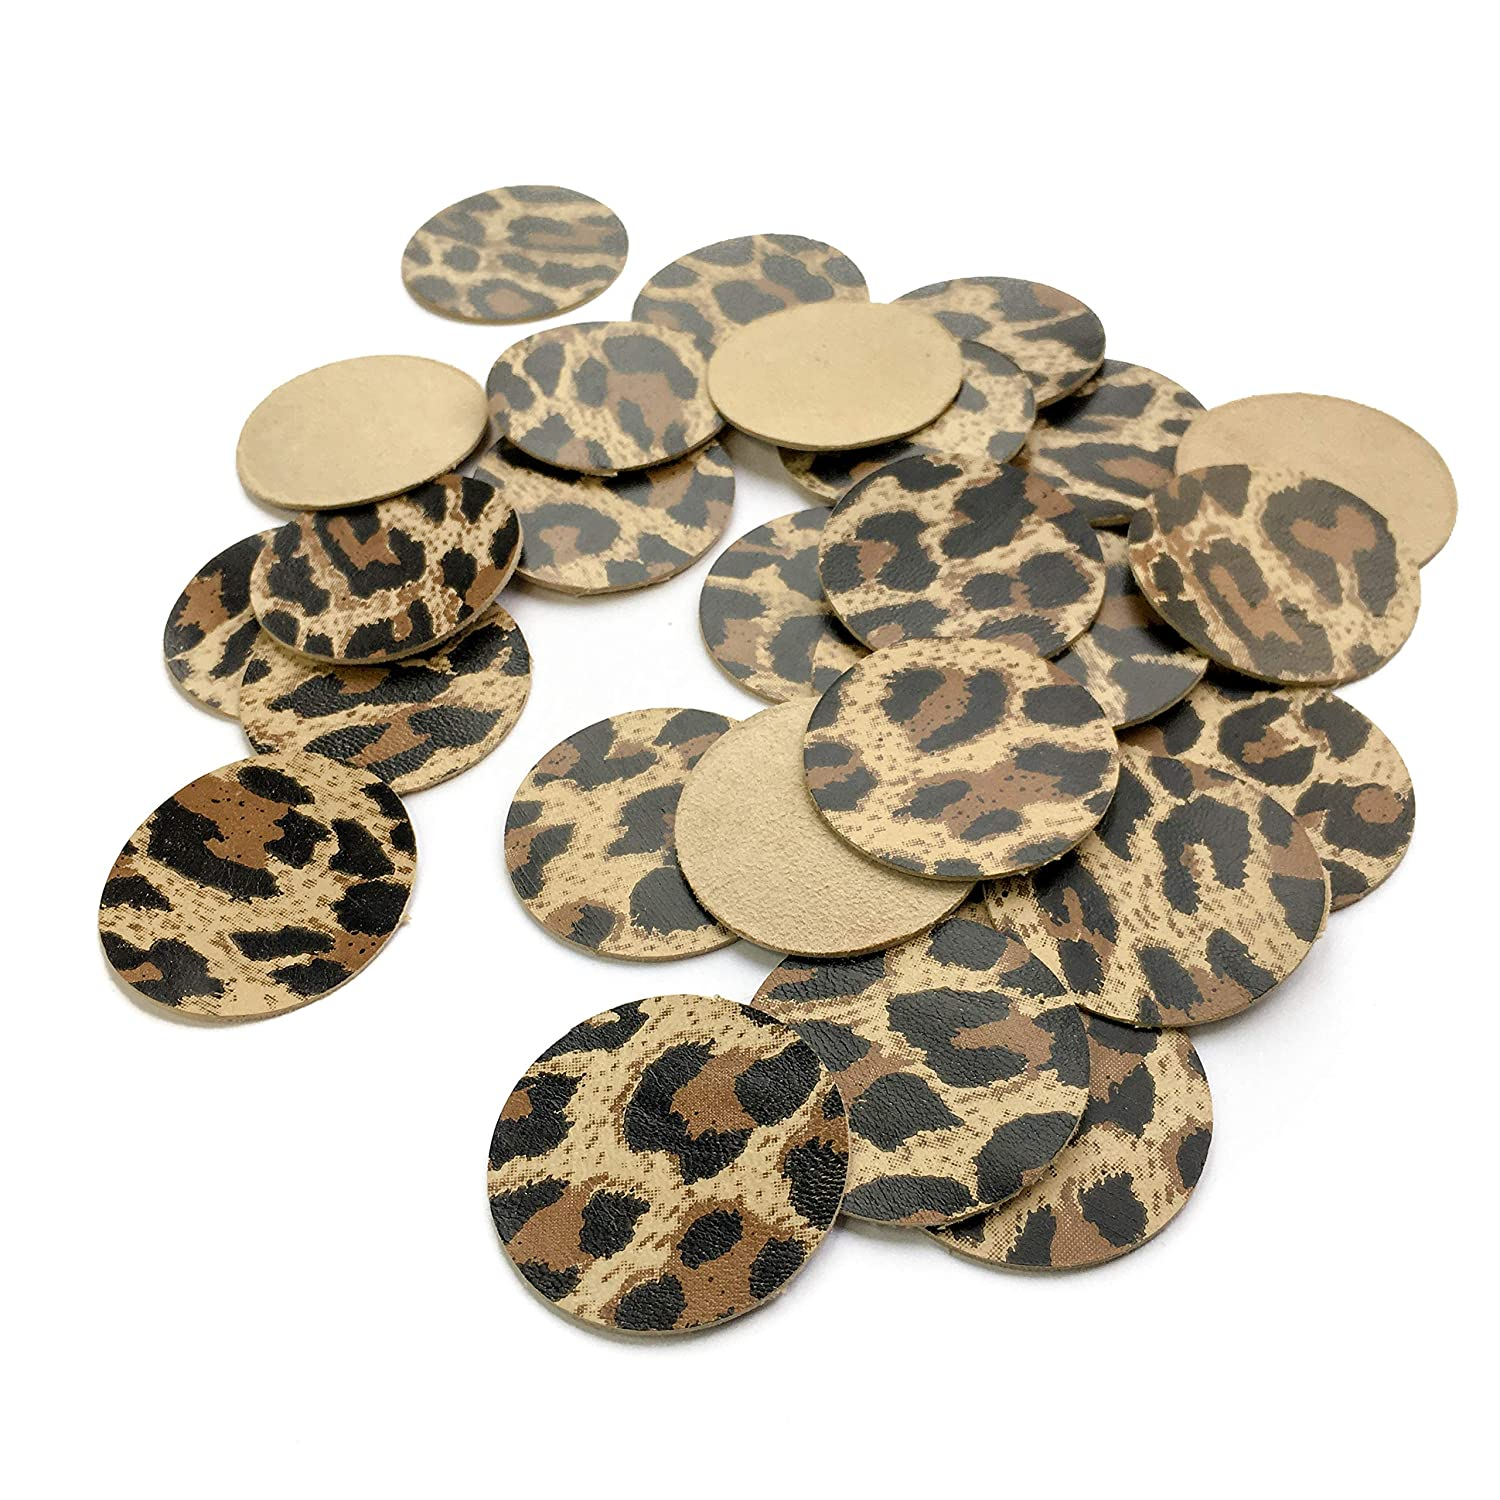 Leopard Print Leather Earring Supplies for Jewelry Making Leather Craft Set Circle Leather Classic Leopard, 2